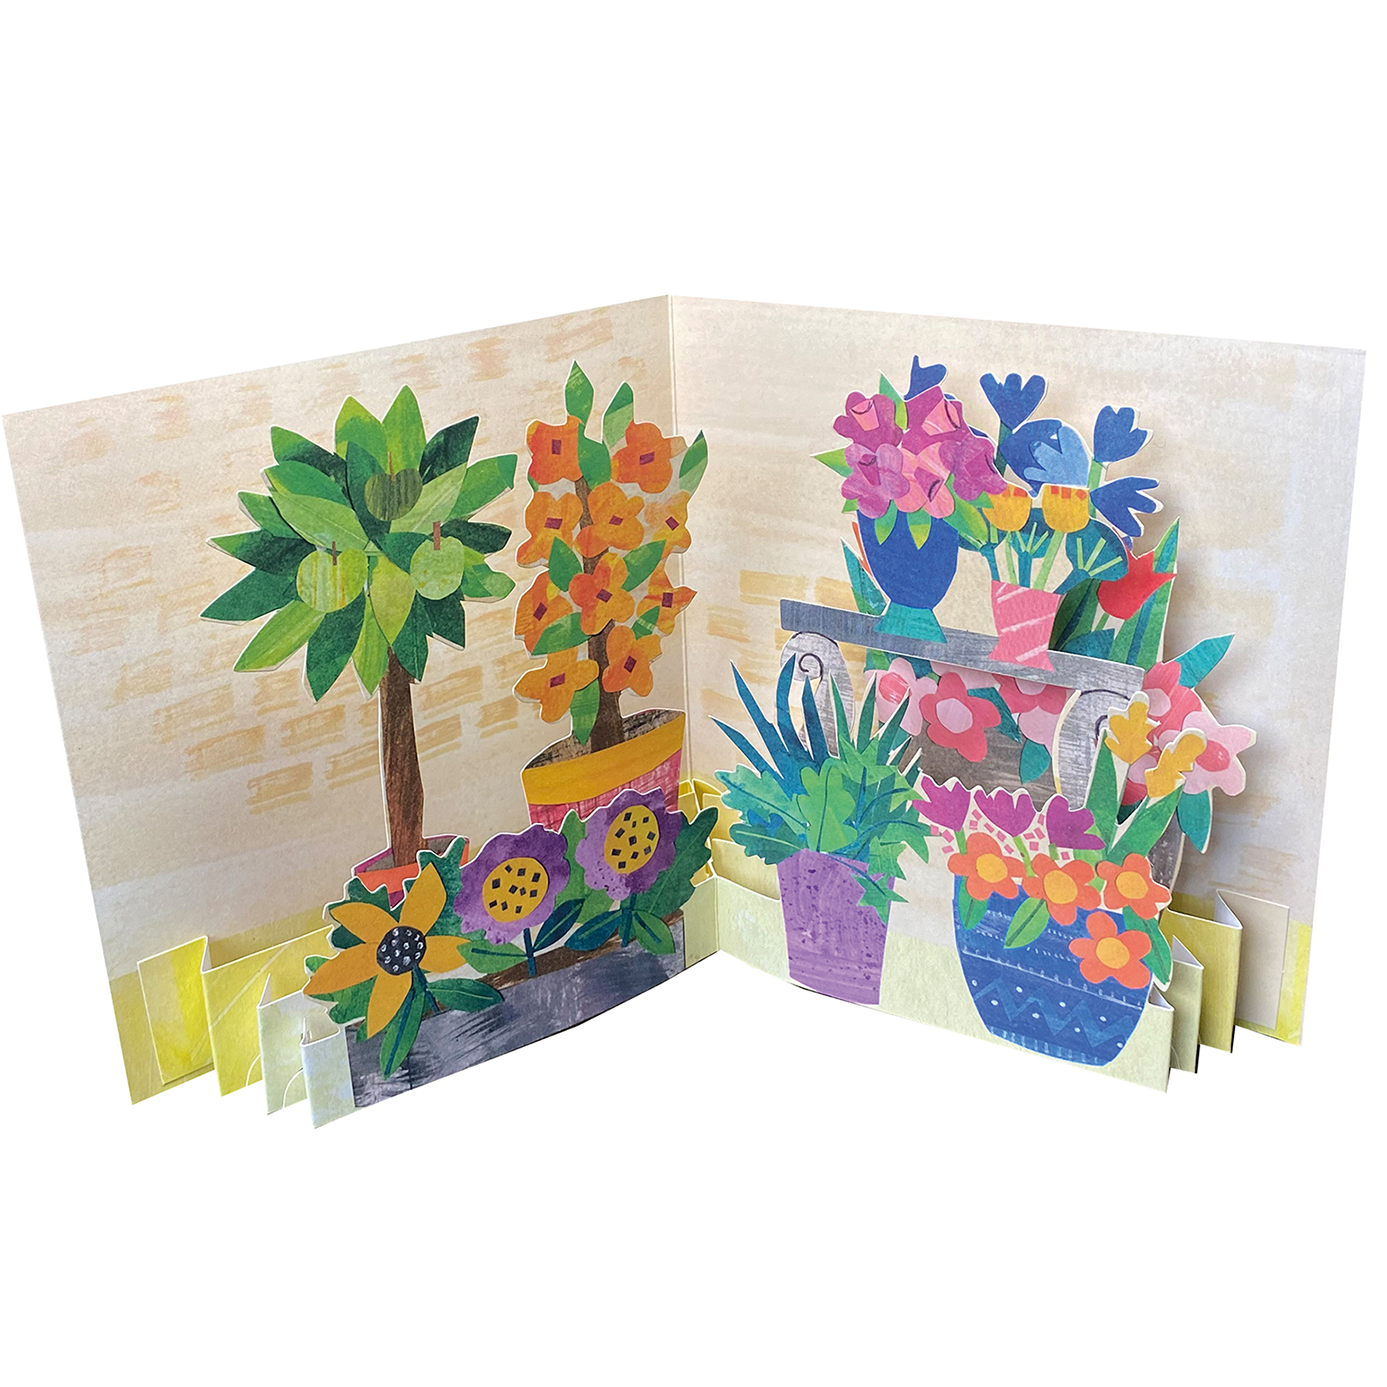 GARDENS: CONTAINER